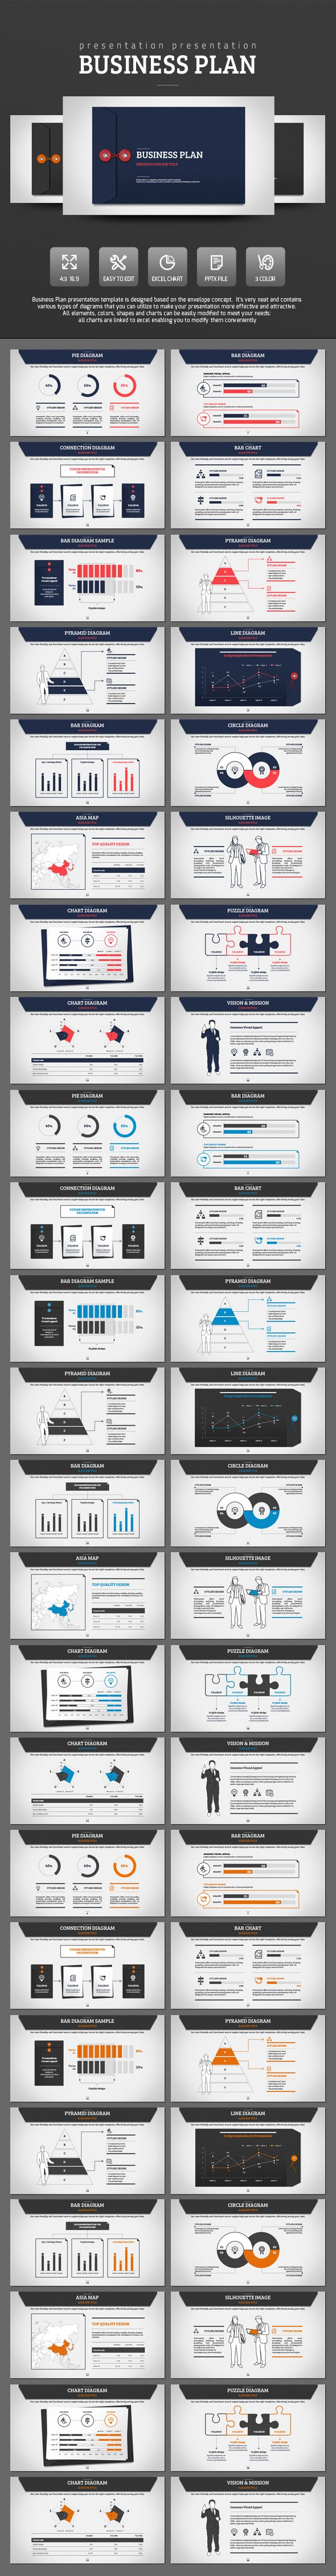 Business Plan PowerPoint Presentation Template #design #slides Download…